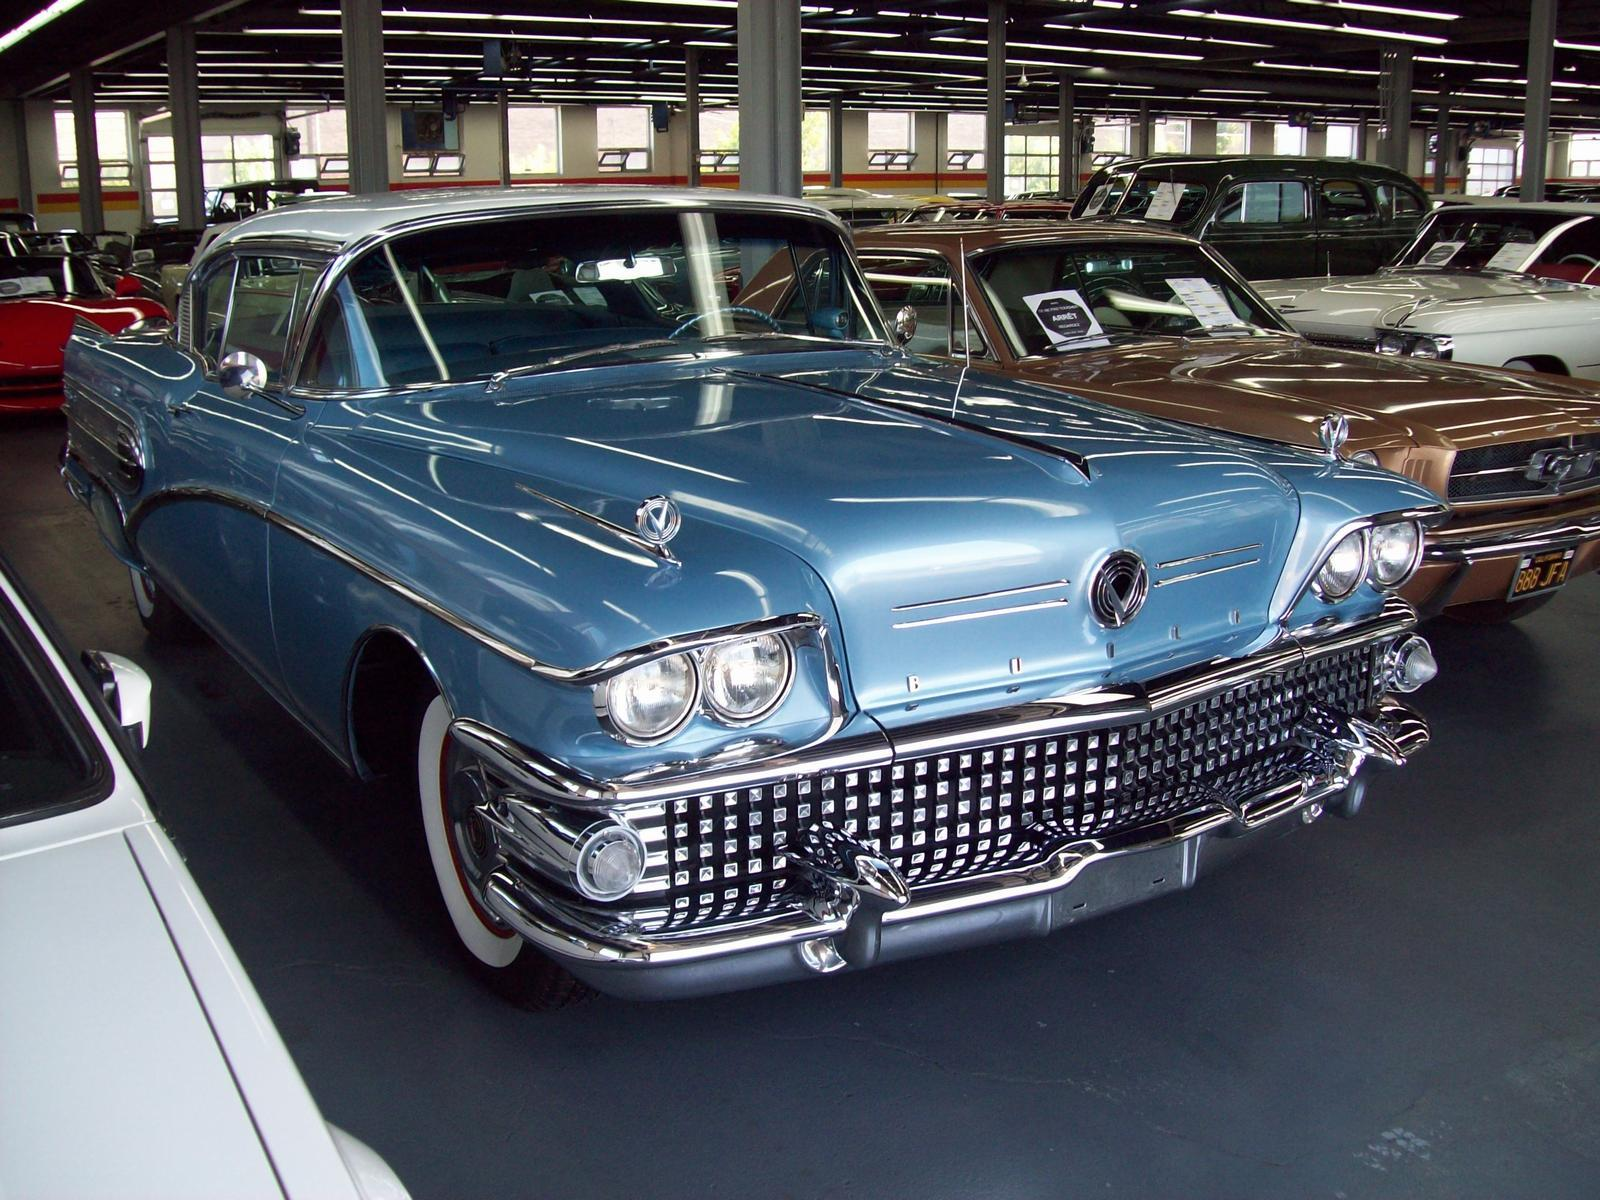 worth finding jpg would buick she automobile what much of t greatly input it model these about be general for may hopes any discussion i buicks know value don in topic sale out antique appreciated reached old